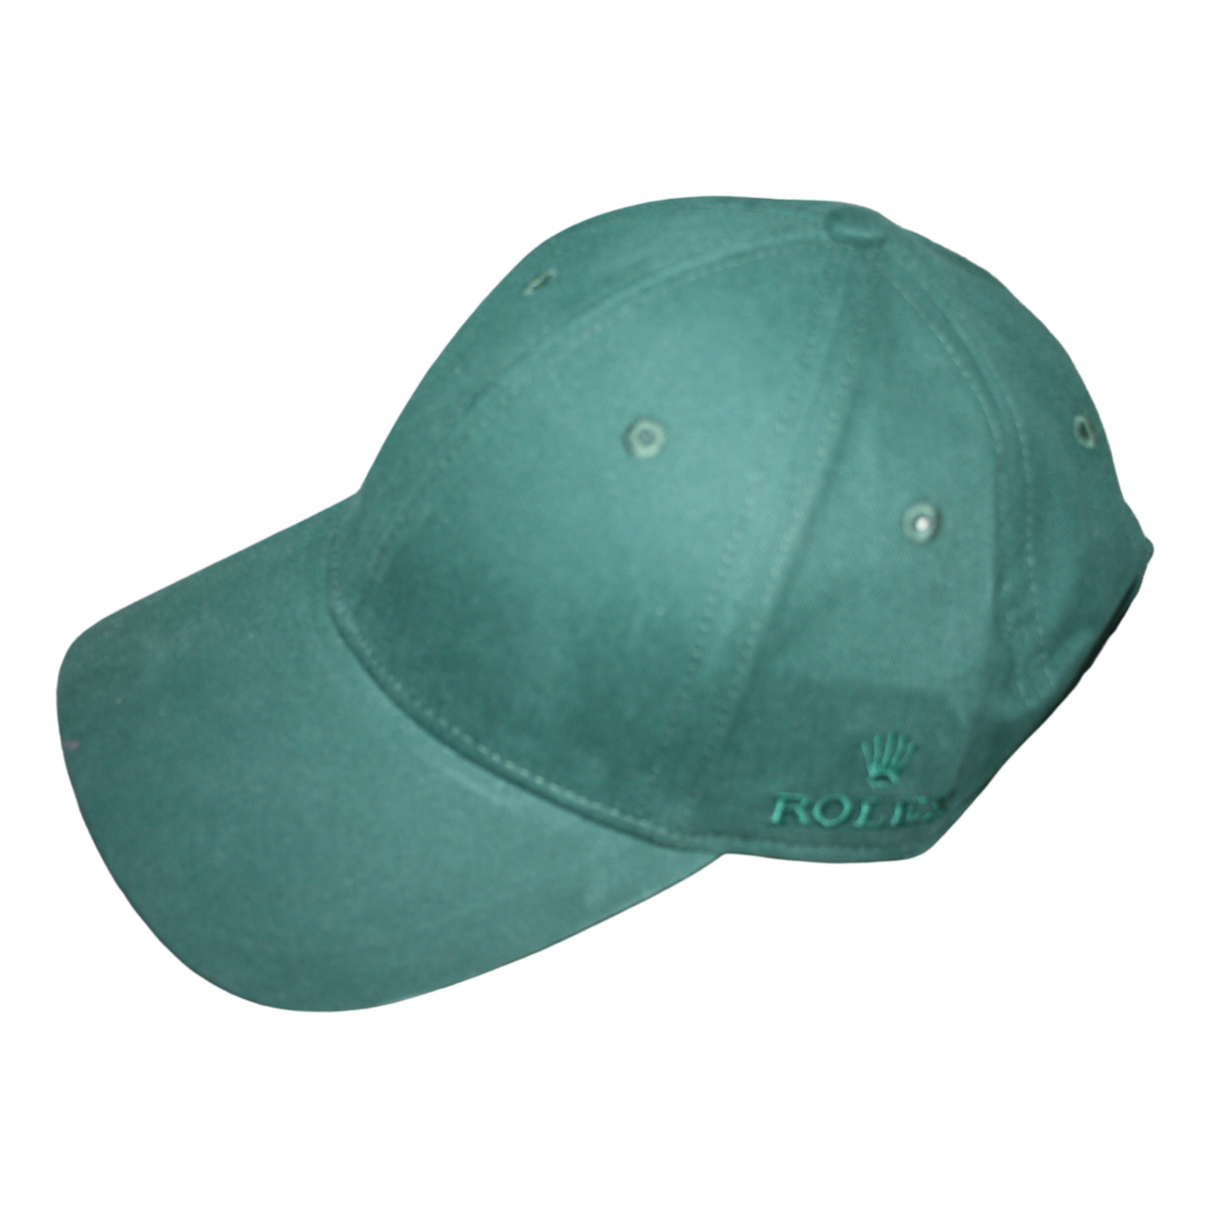 Rolex \N Green Cotton hat & pull on hat for Men 54 cm